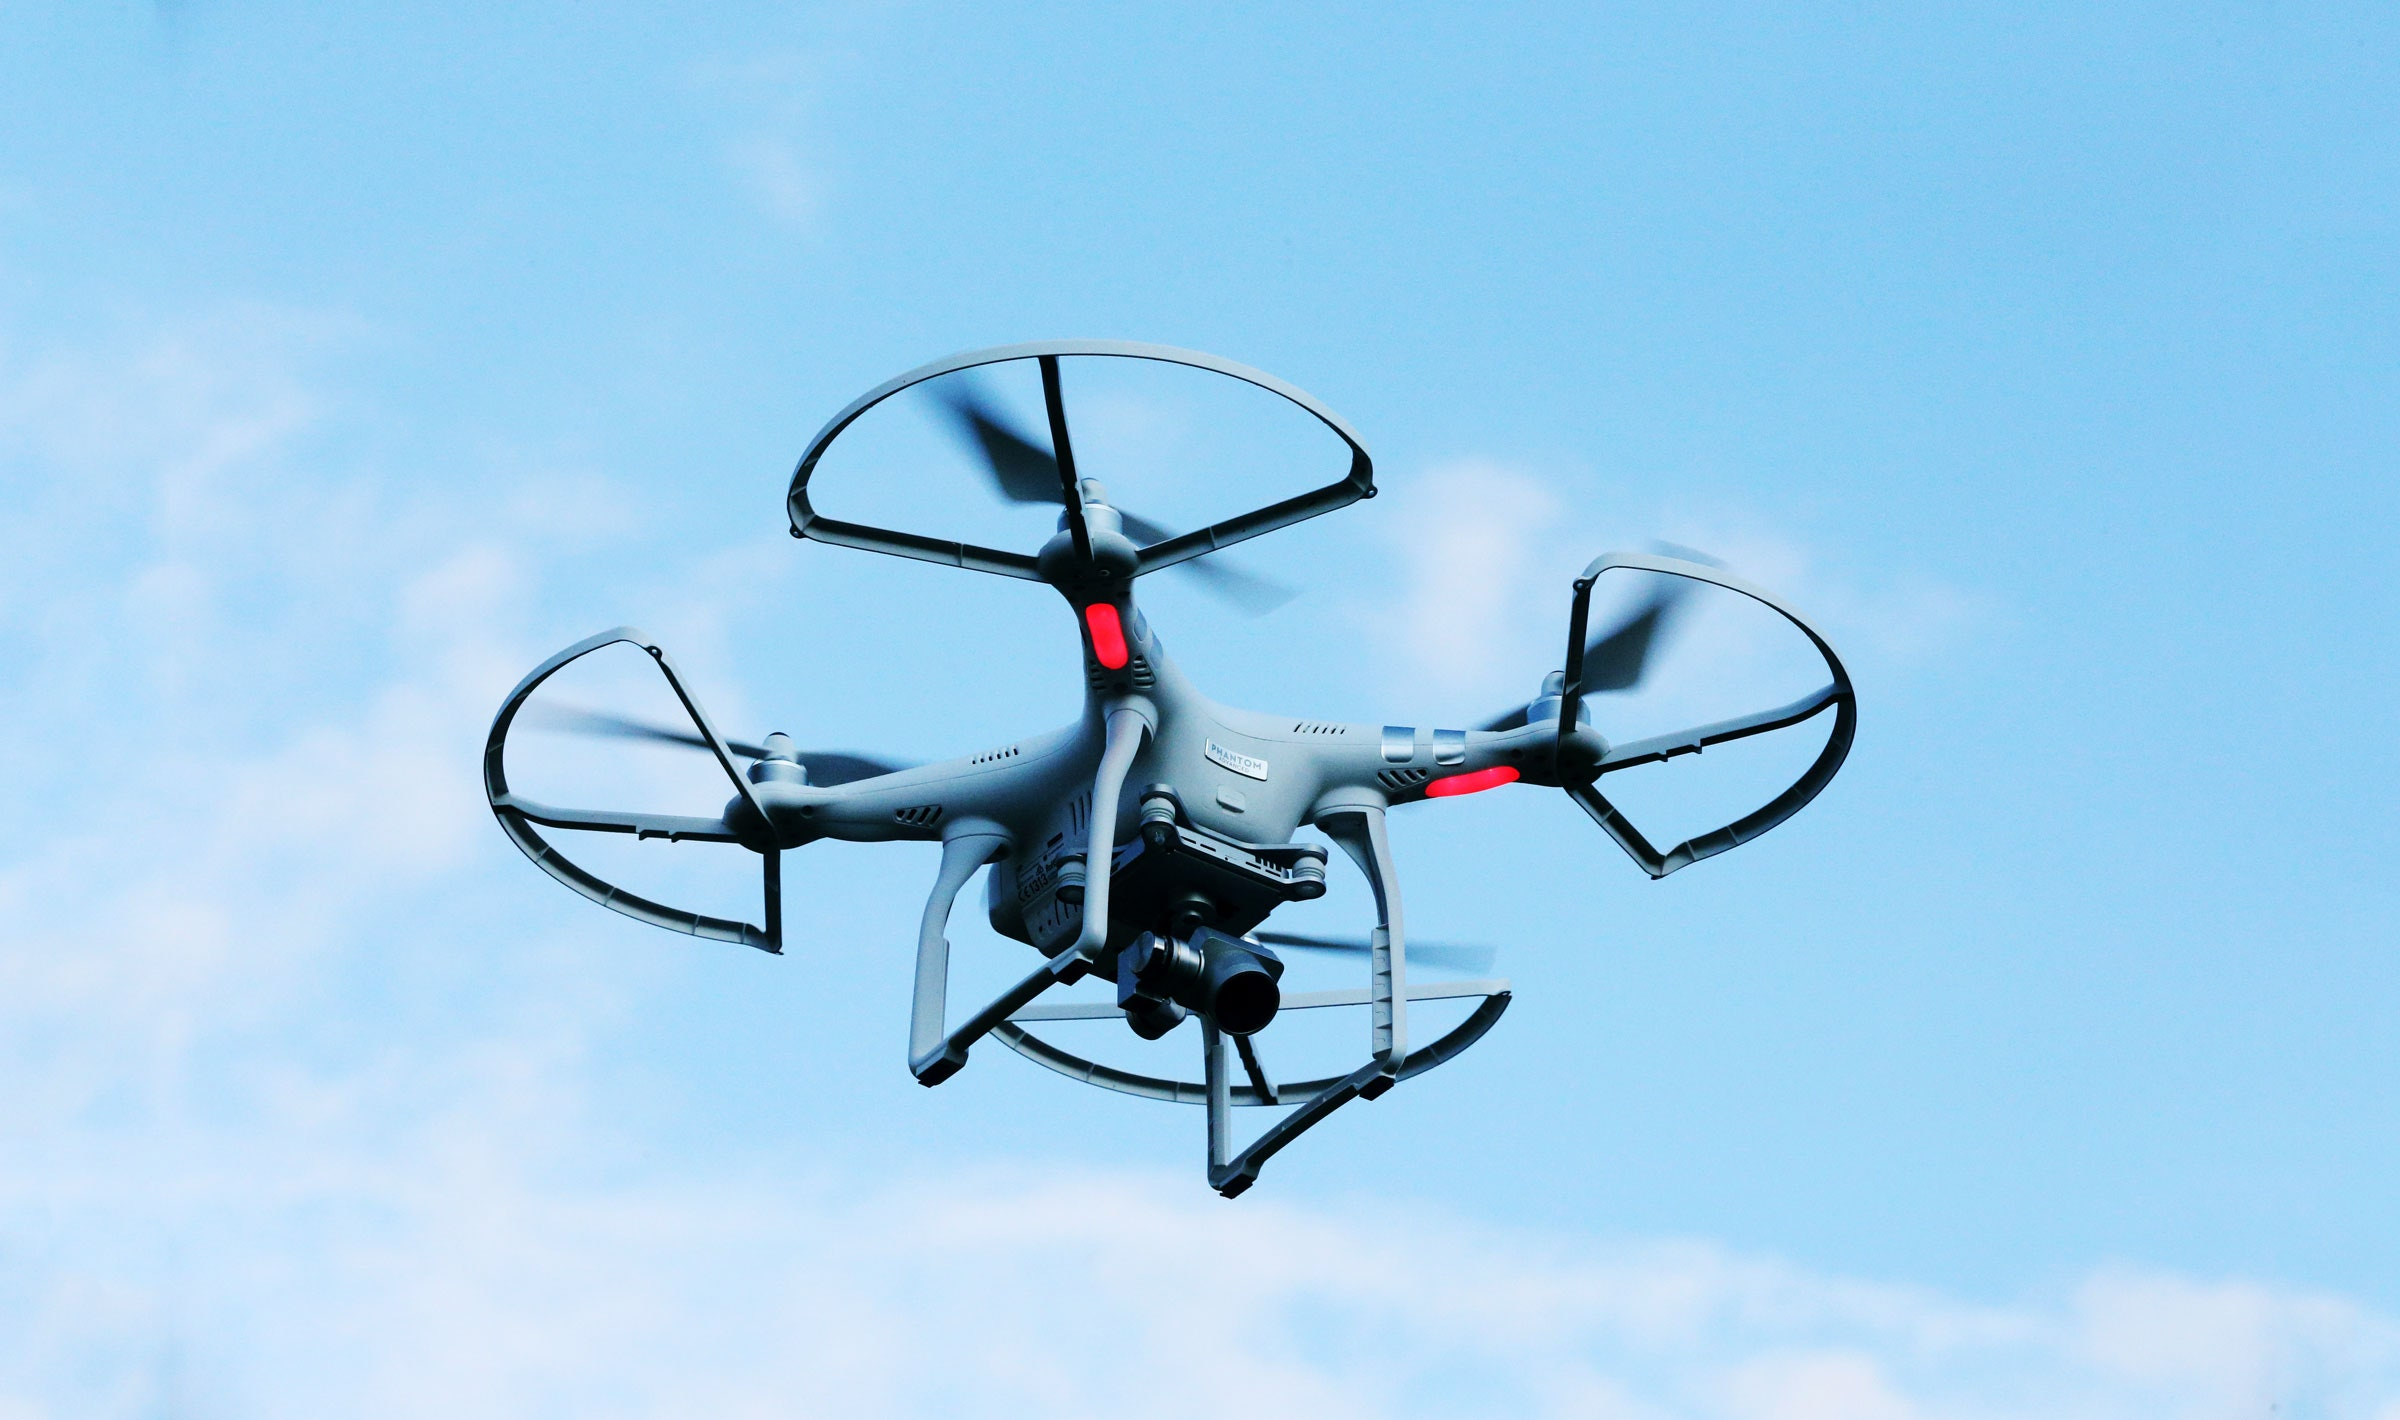 IIT Bombay receives drone use permission from Civil Aviation Ministry, DGCA